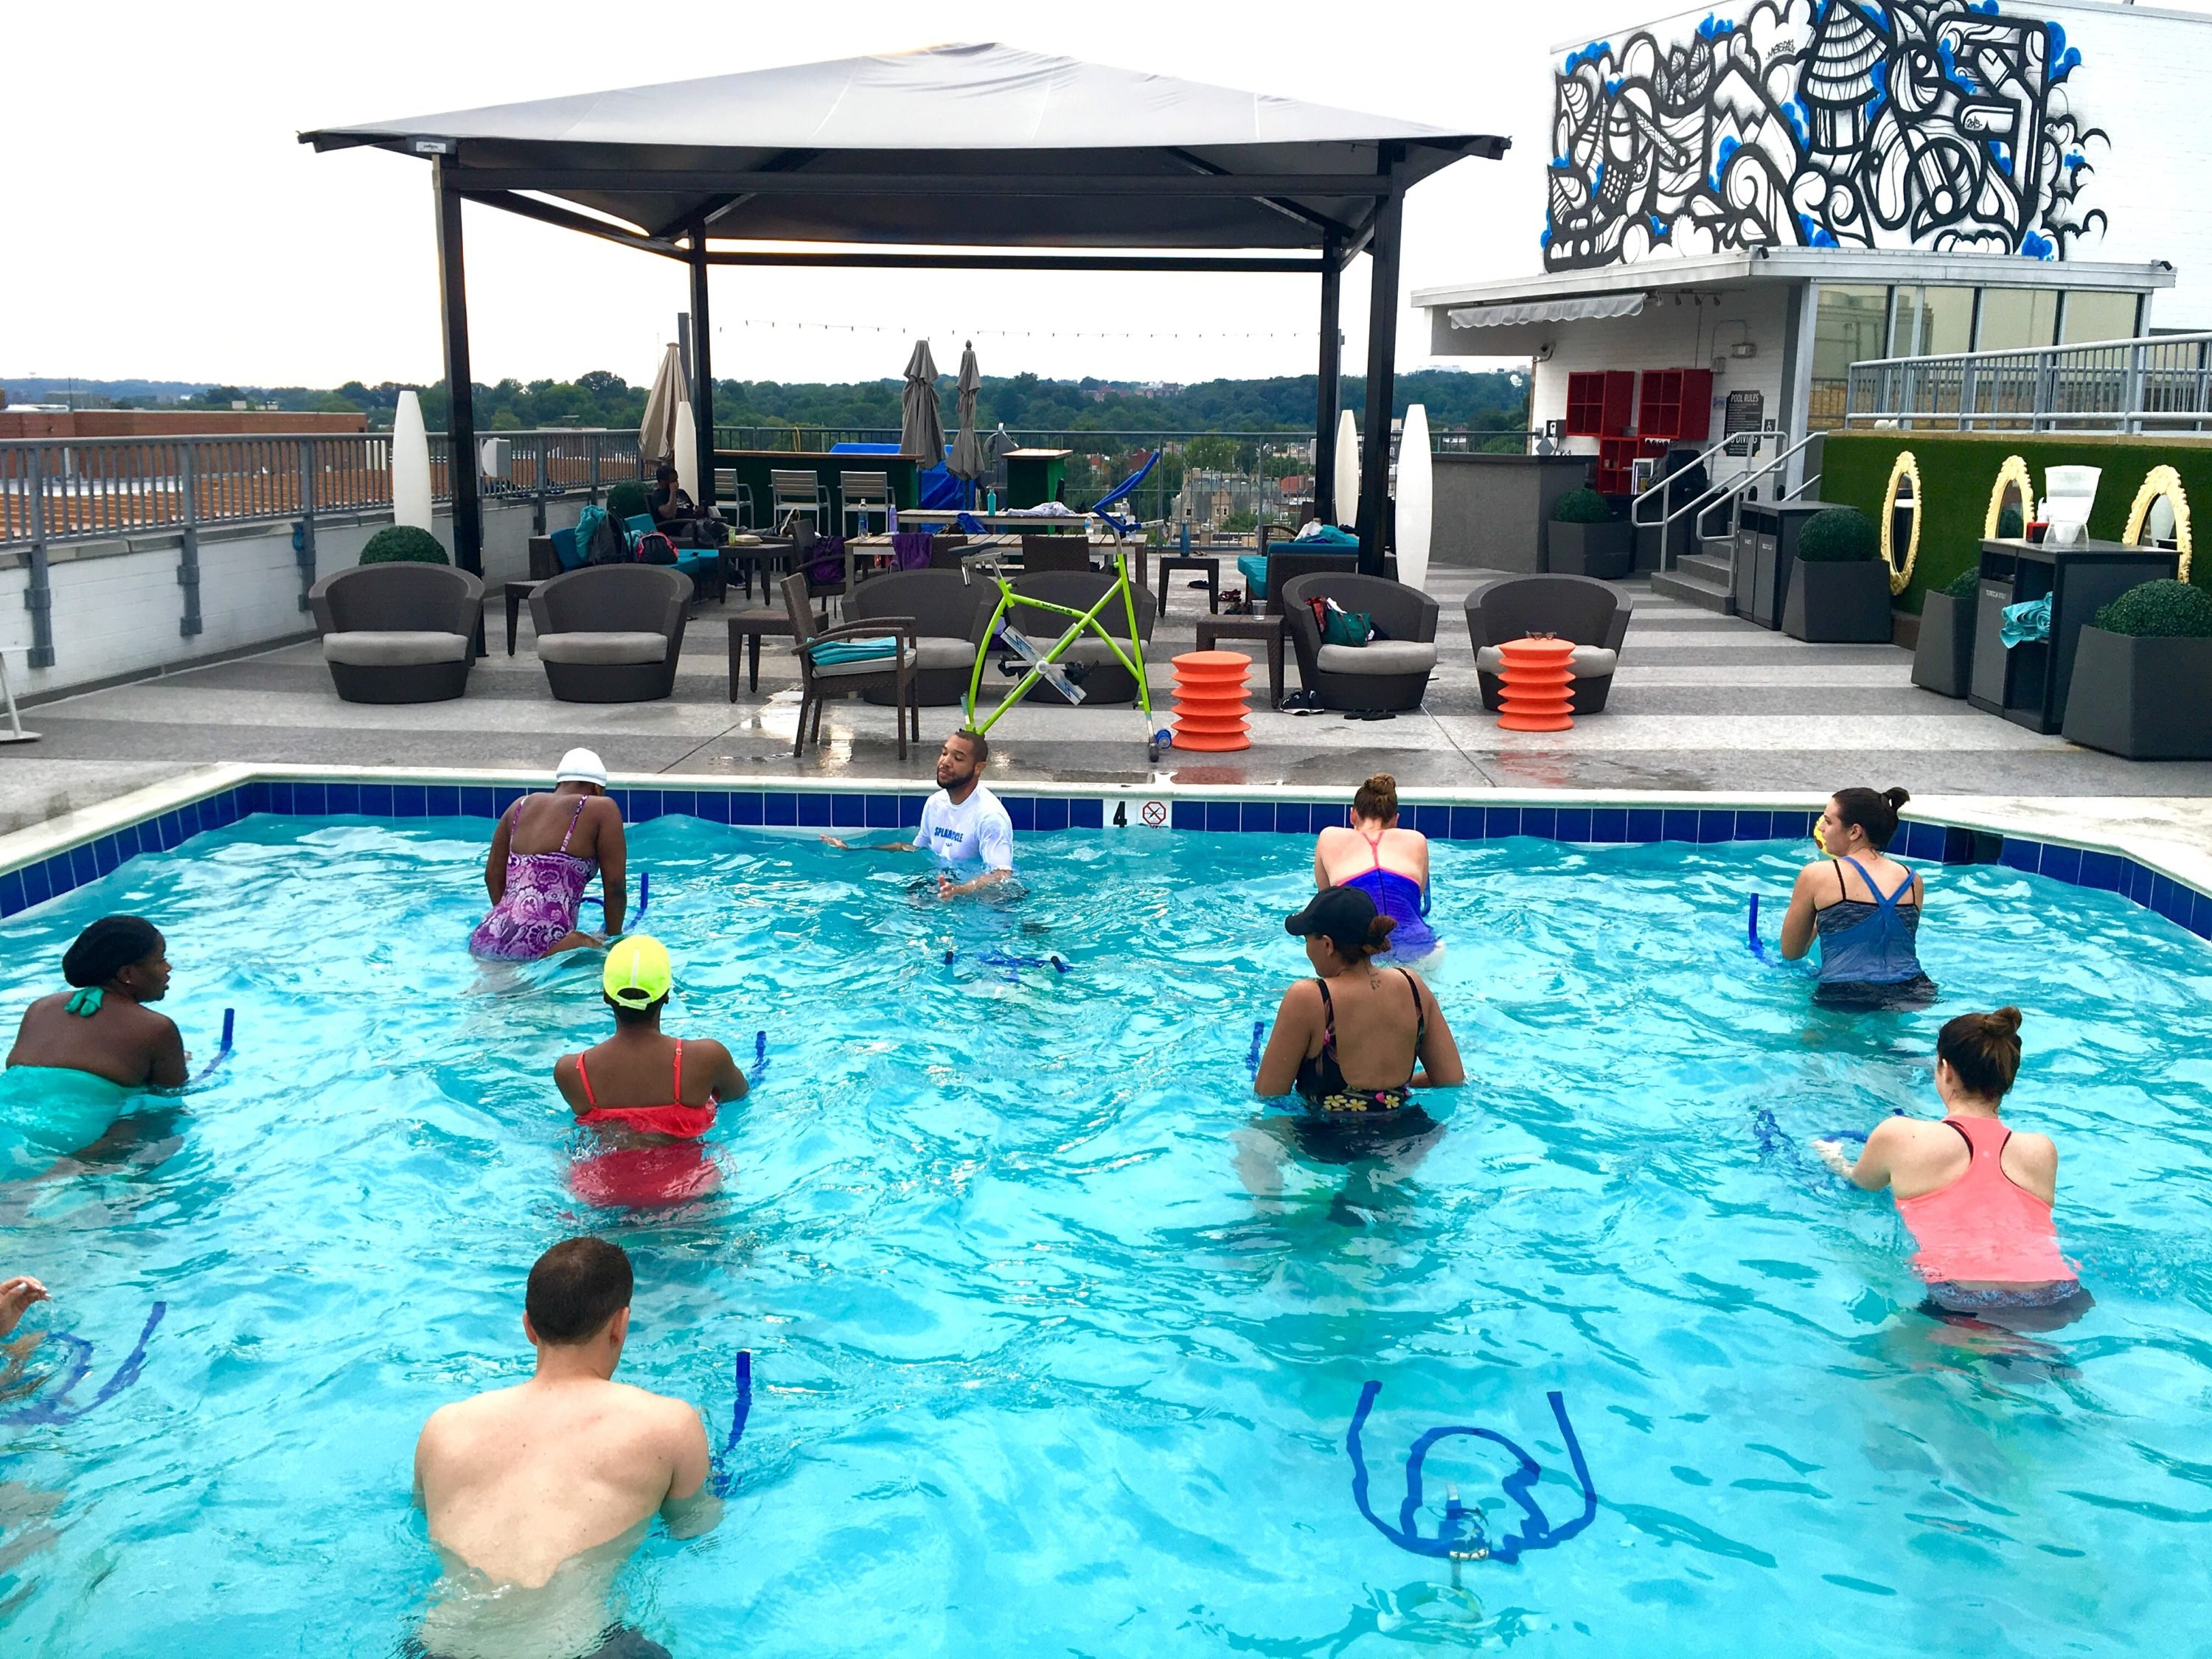 Just In Time For Summer An Underwater Cycling Class In A